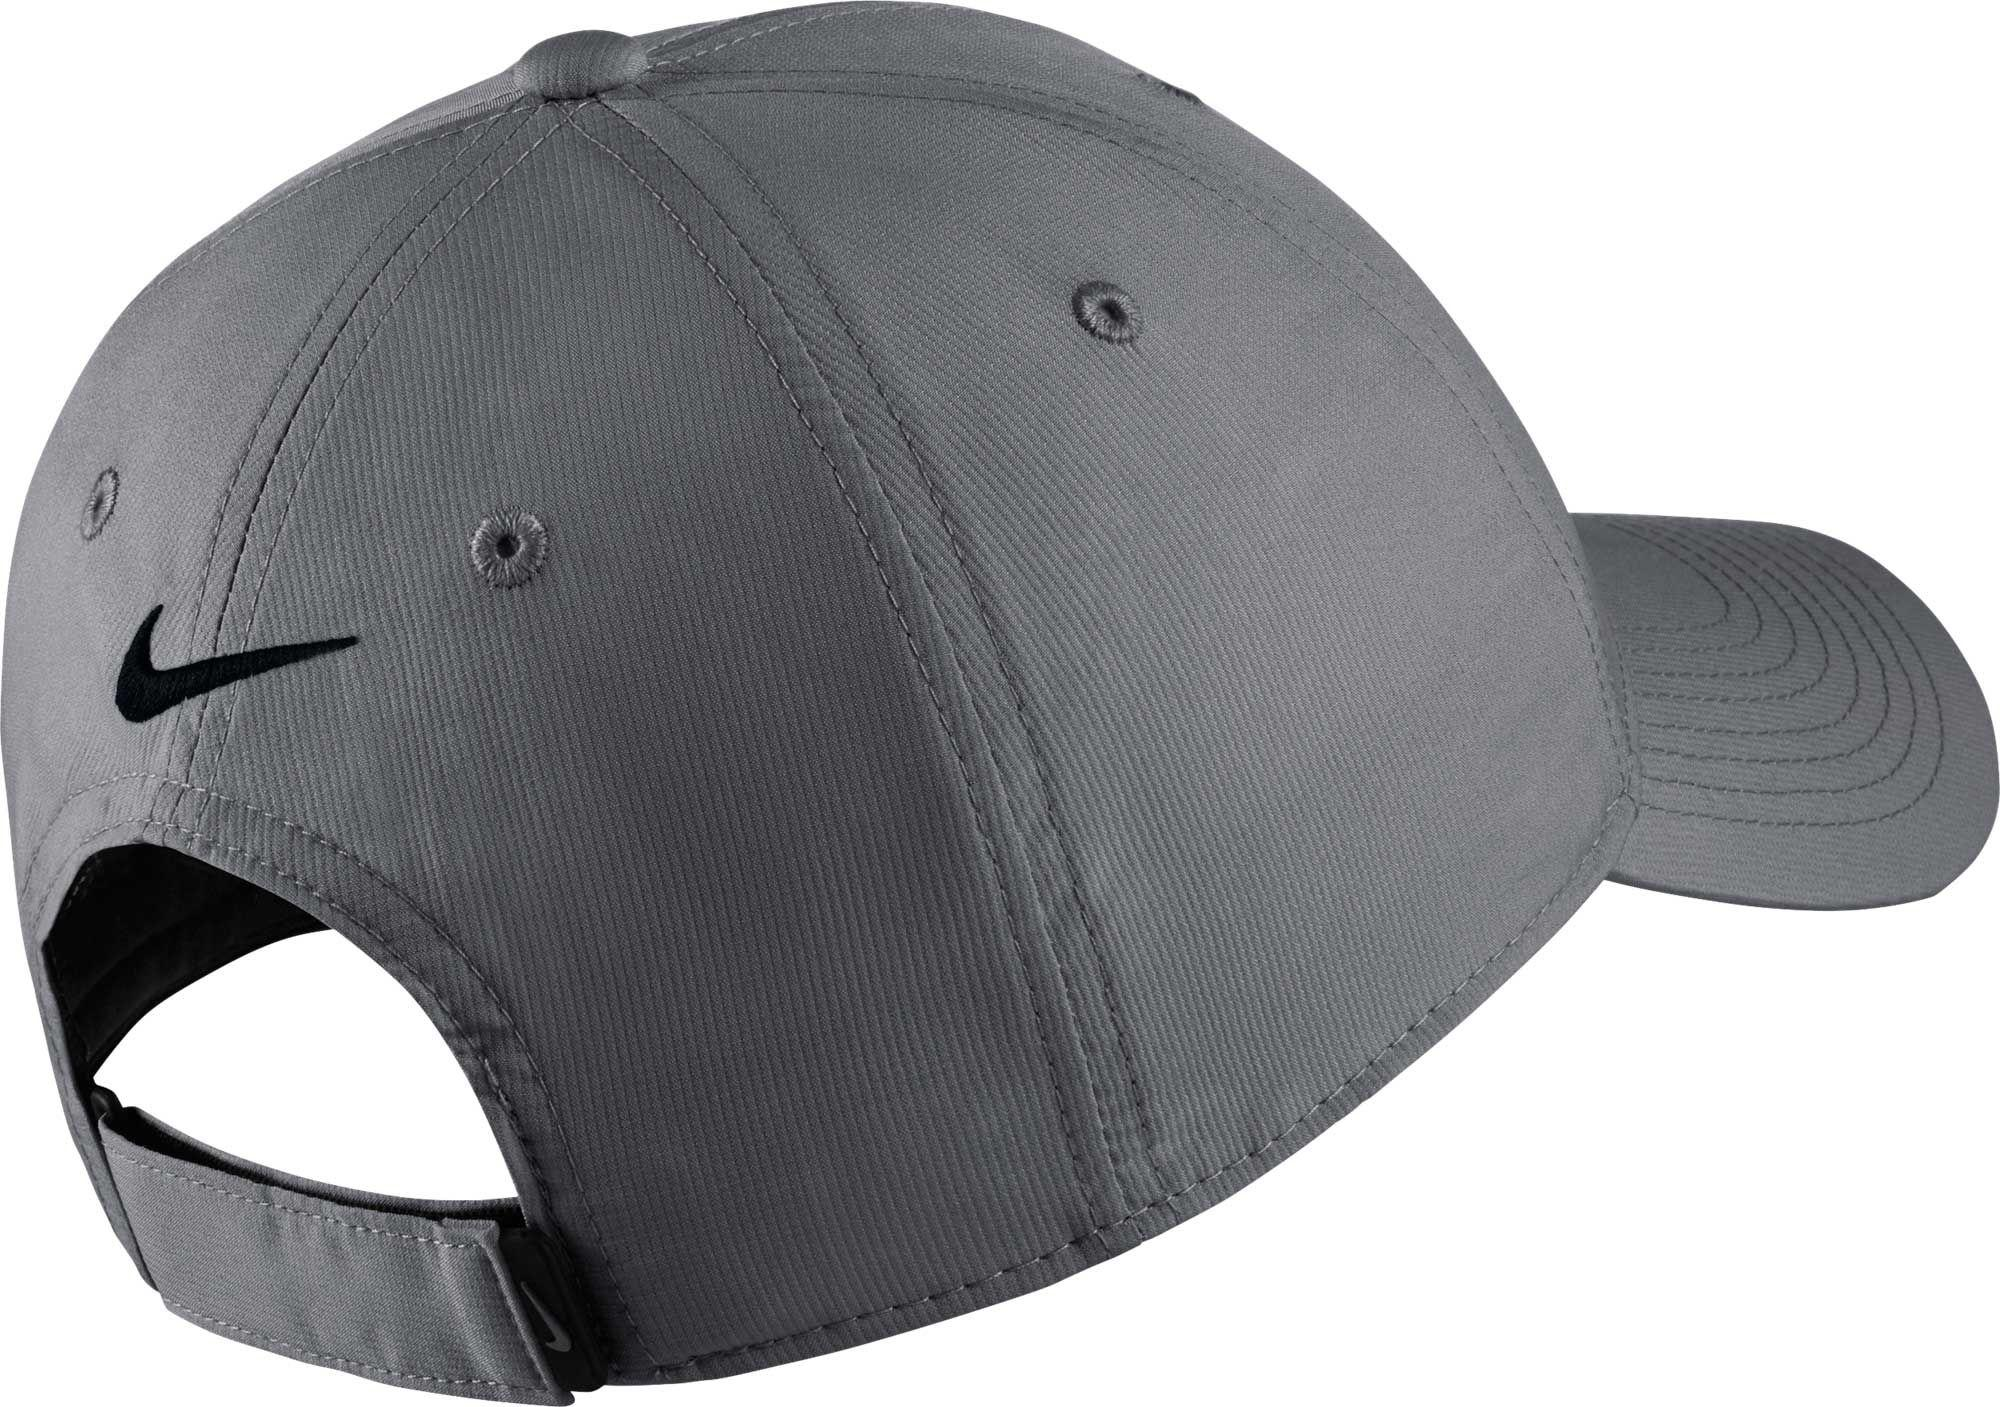 f76bf472159b1 Nike Legacy91 Tech Golf Hat in Gray for Men - Lyst